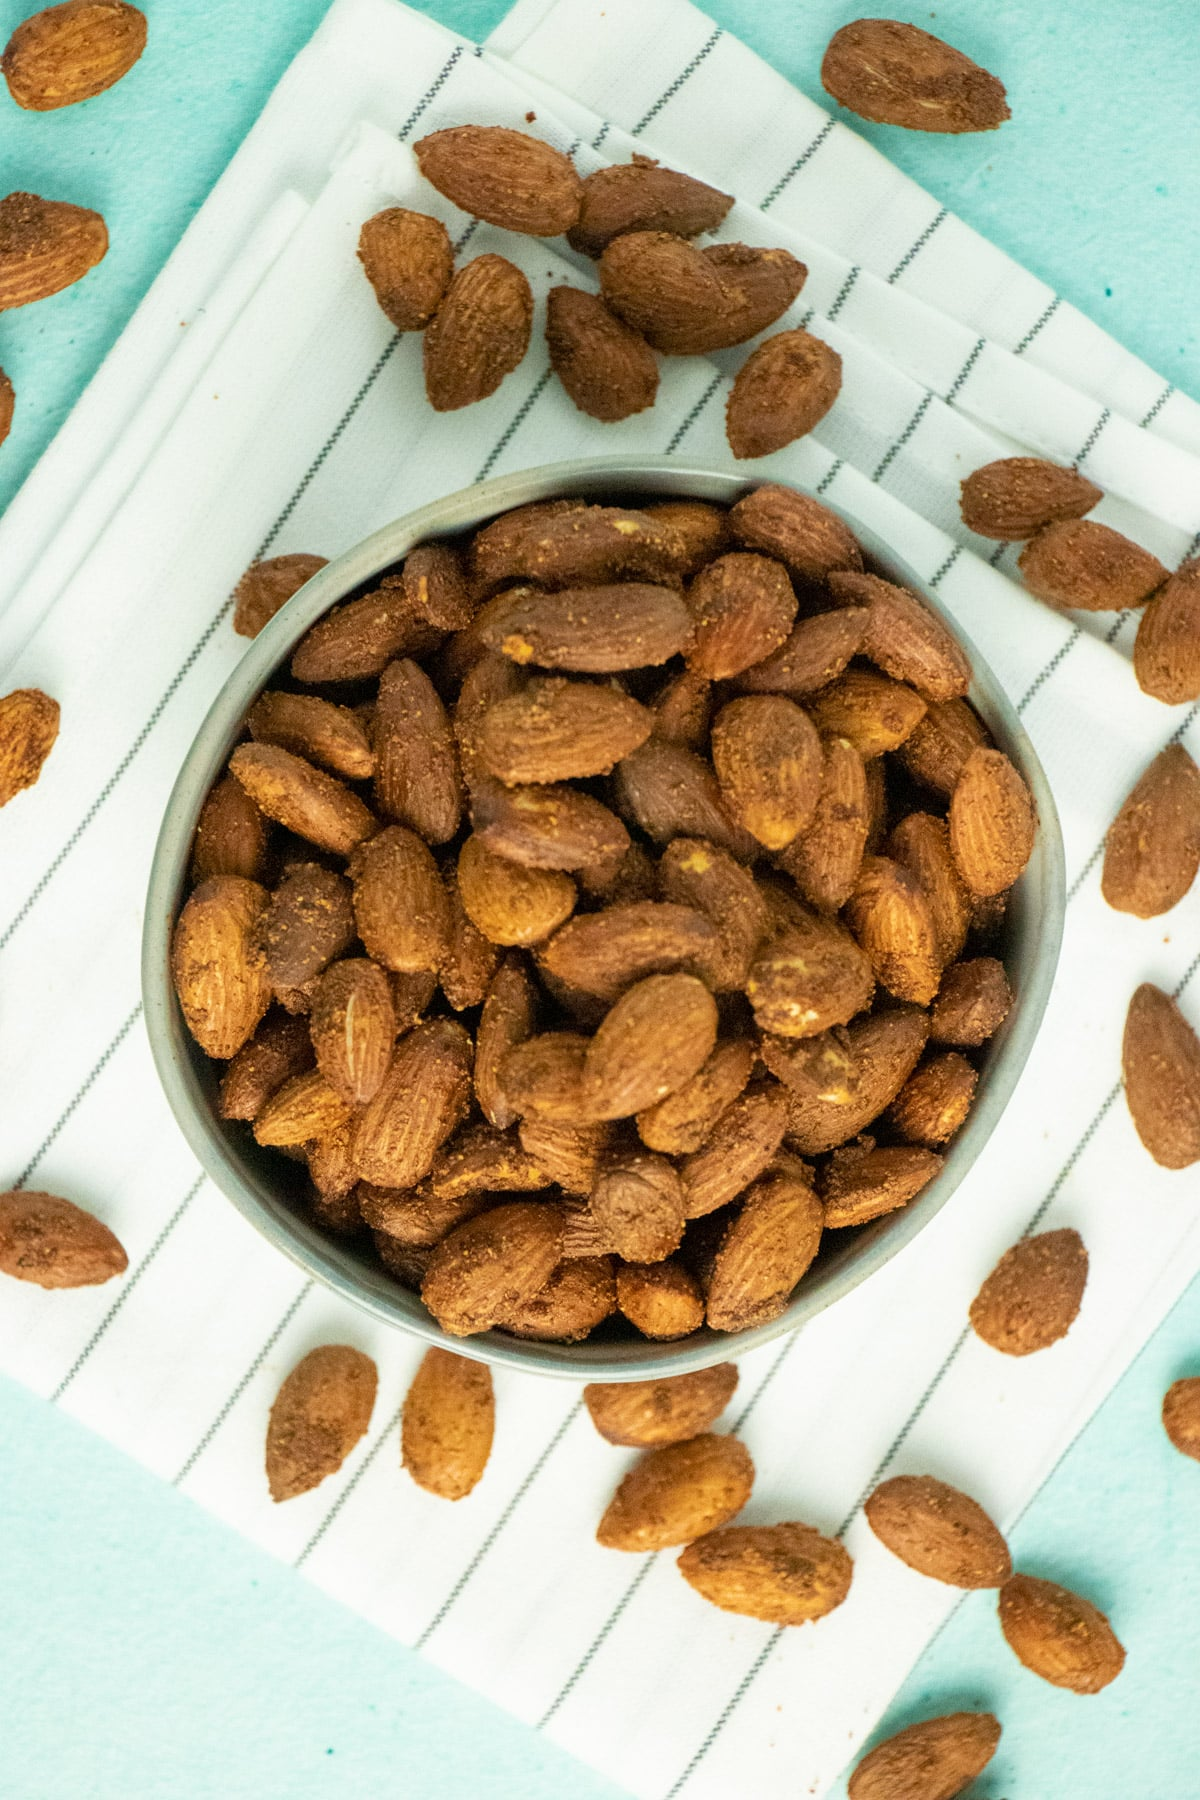 small serving bowl of garlic air fryer roasted almonds on a striped tea towel